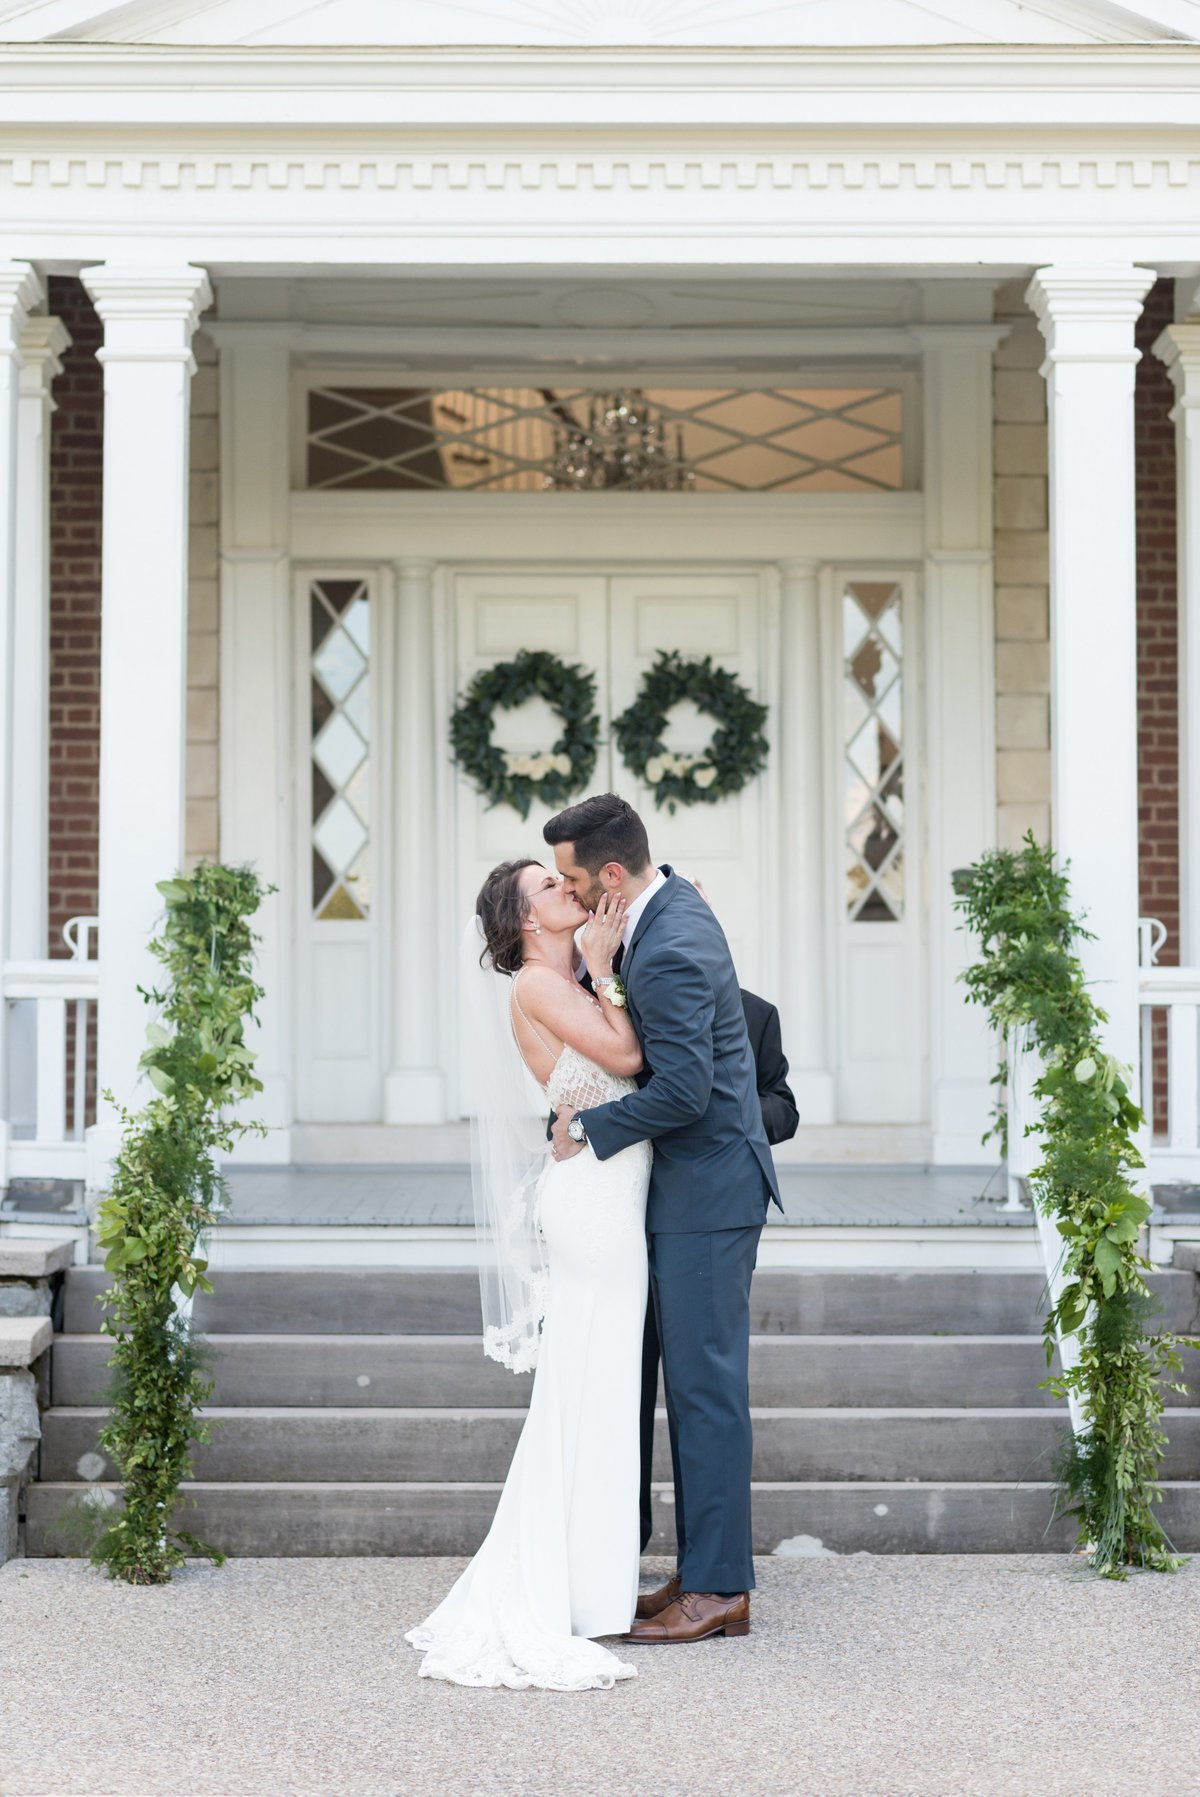 Ravenswood-Mansion-Wedding-in-Brentwood-TN-Nashville-Wedding-Photographers+8